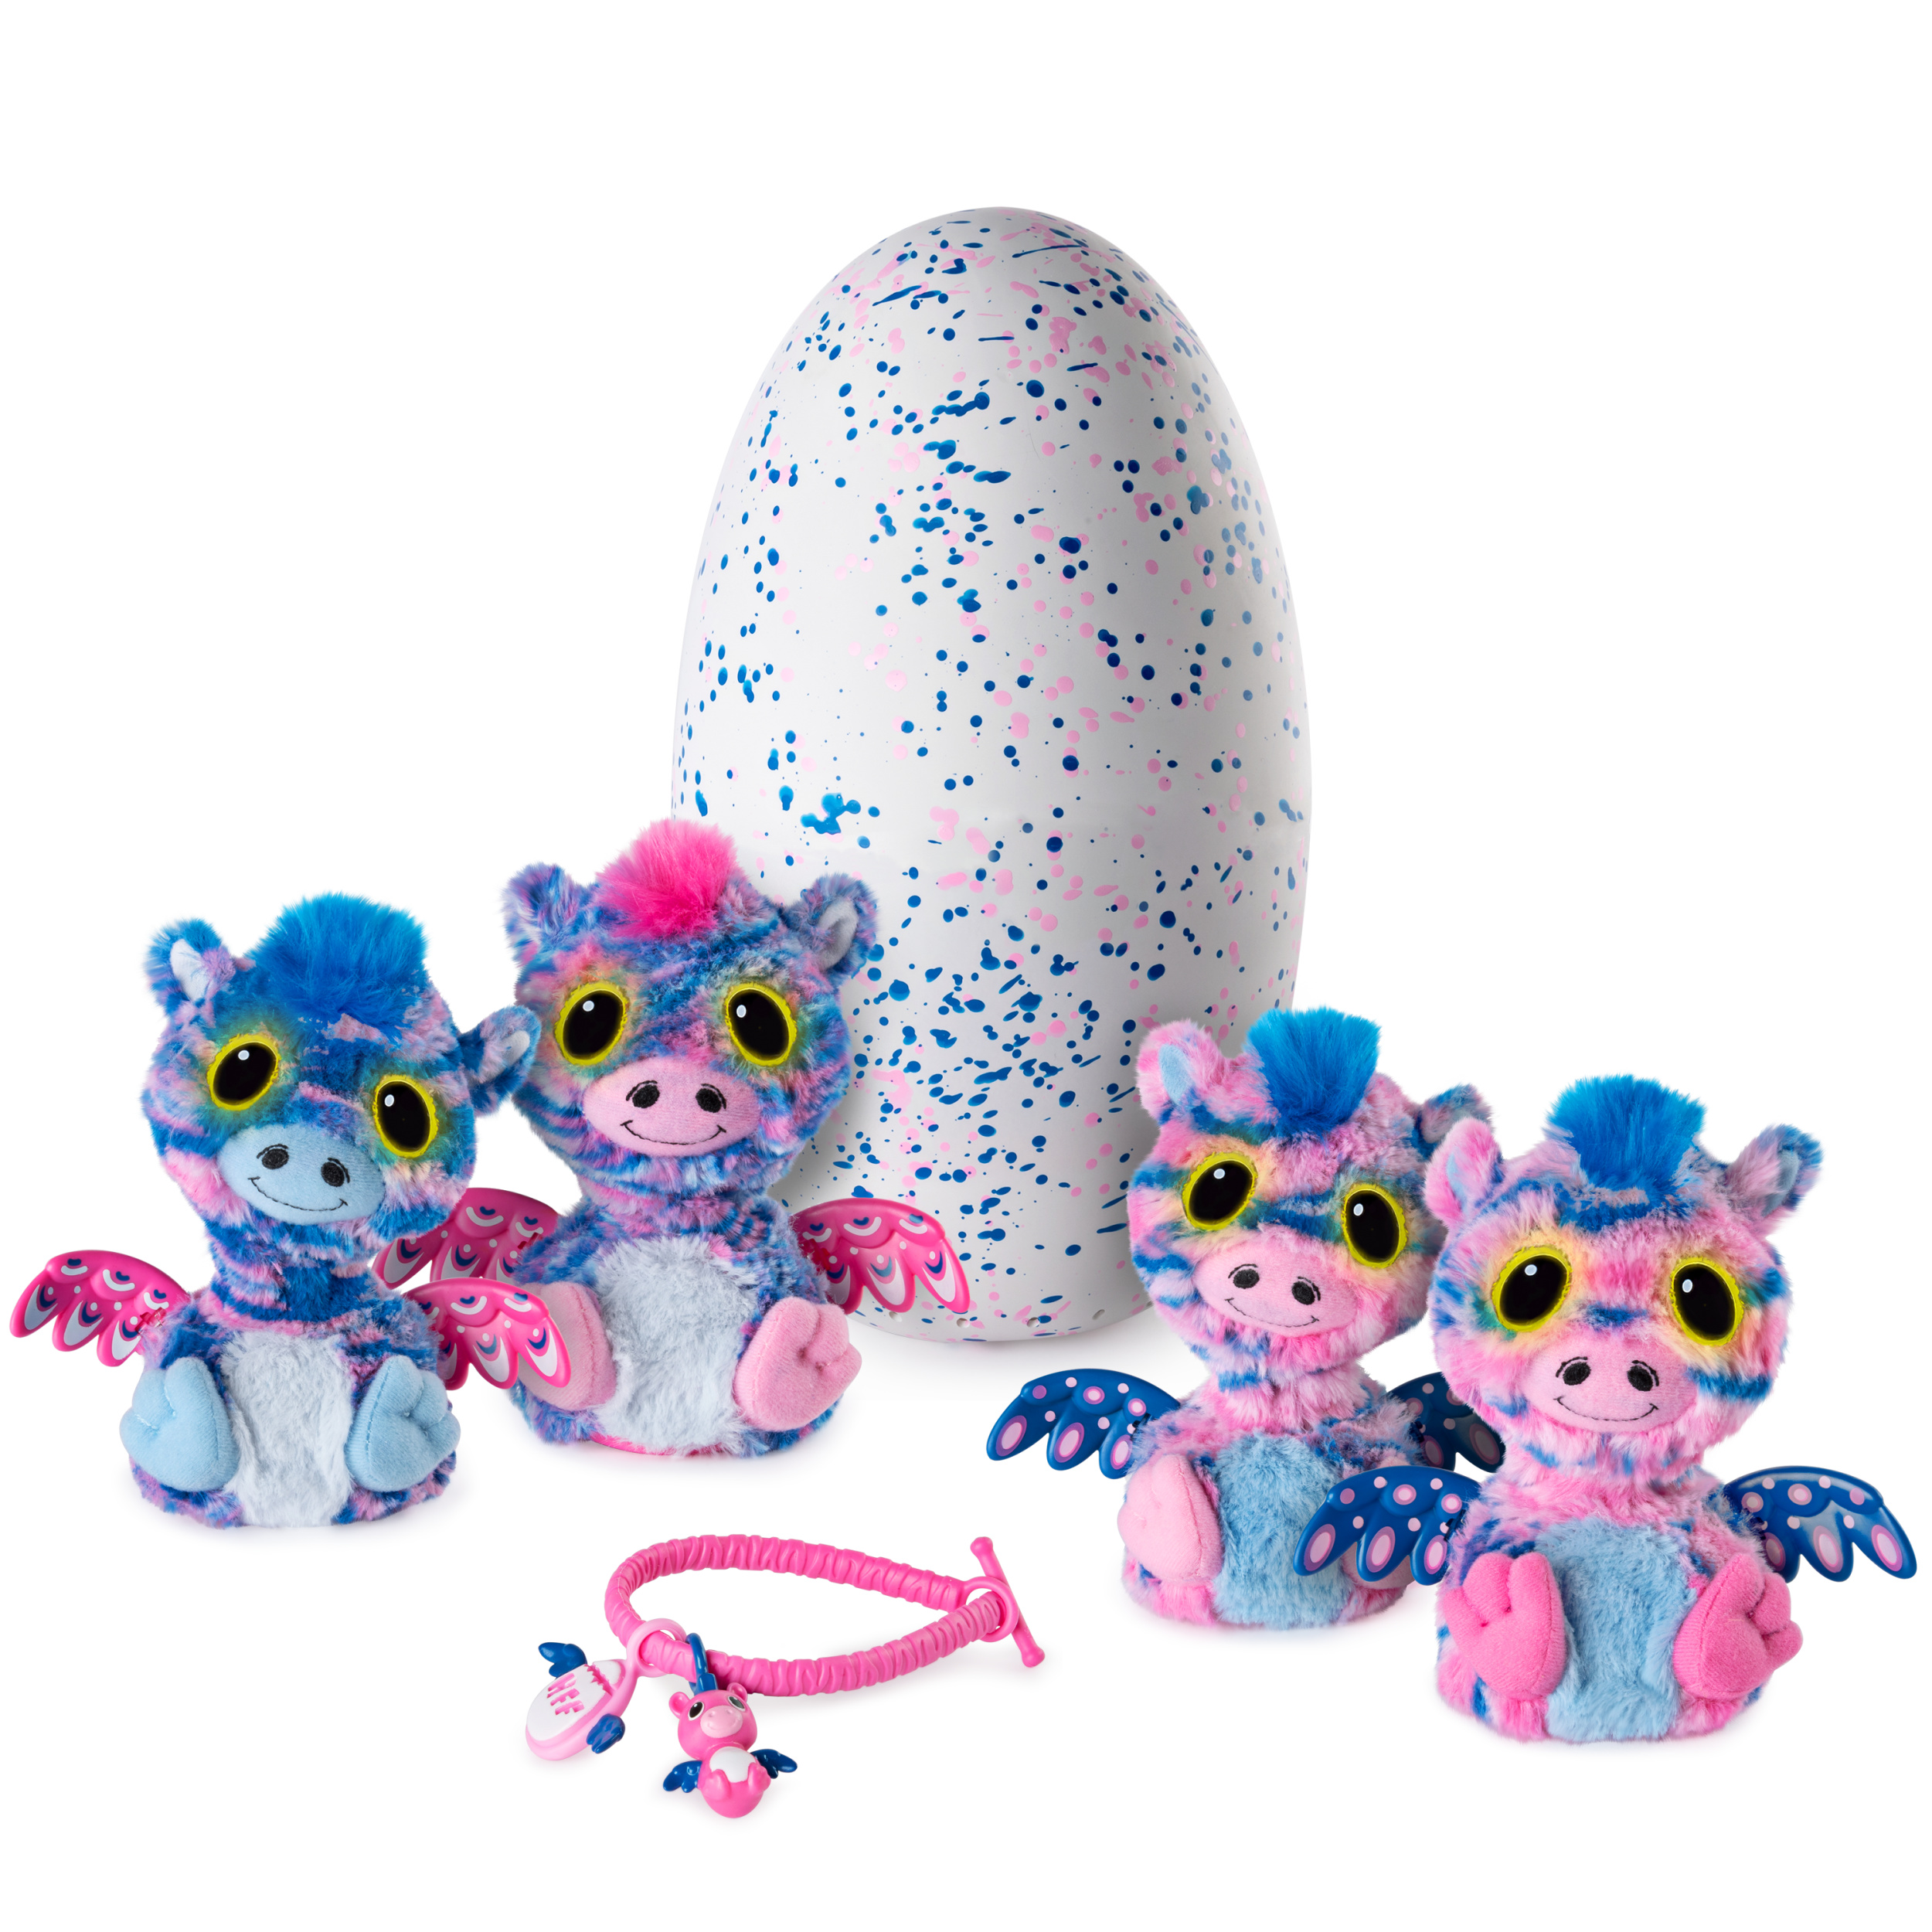 Hatchimals Surprise, Zuffin, Hatching Egg with Surprise Twin Interactive Hatchimal Creatures and Bracelet Accessory by Spin Master, Available Exclusively at Walmart